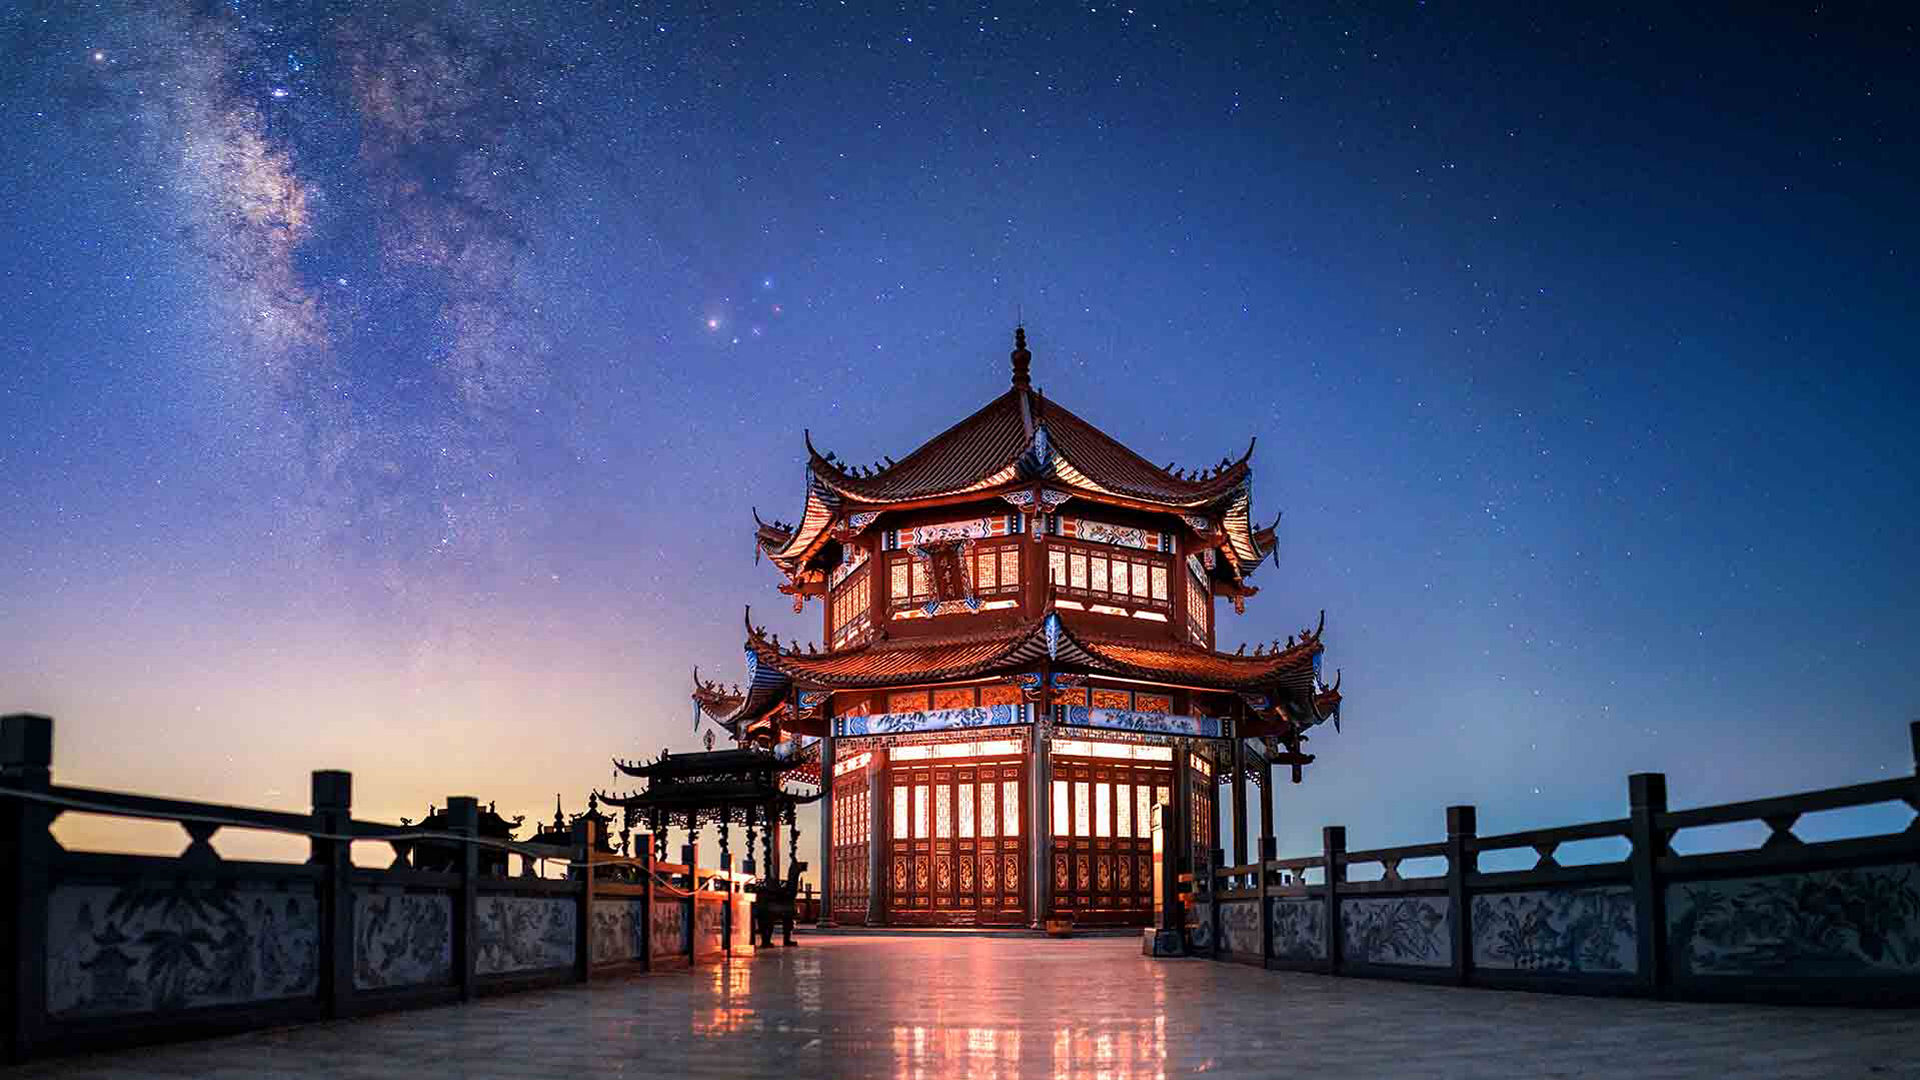 Chinese building and the Milky Way